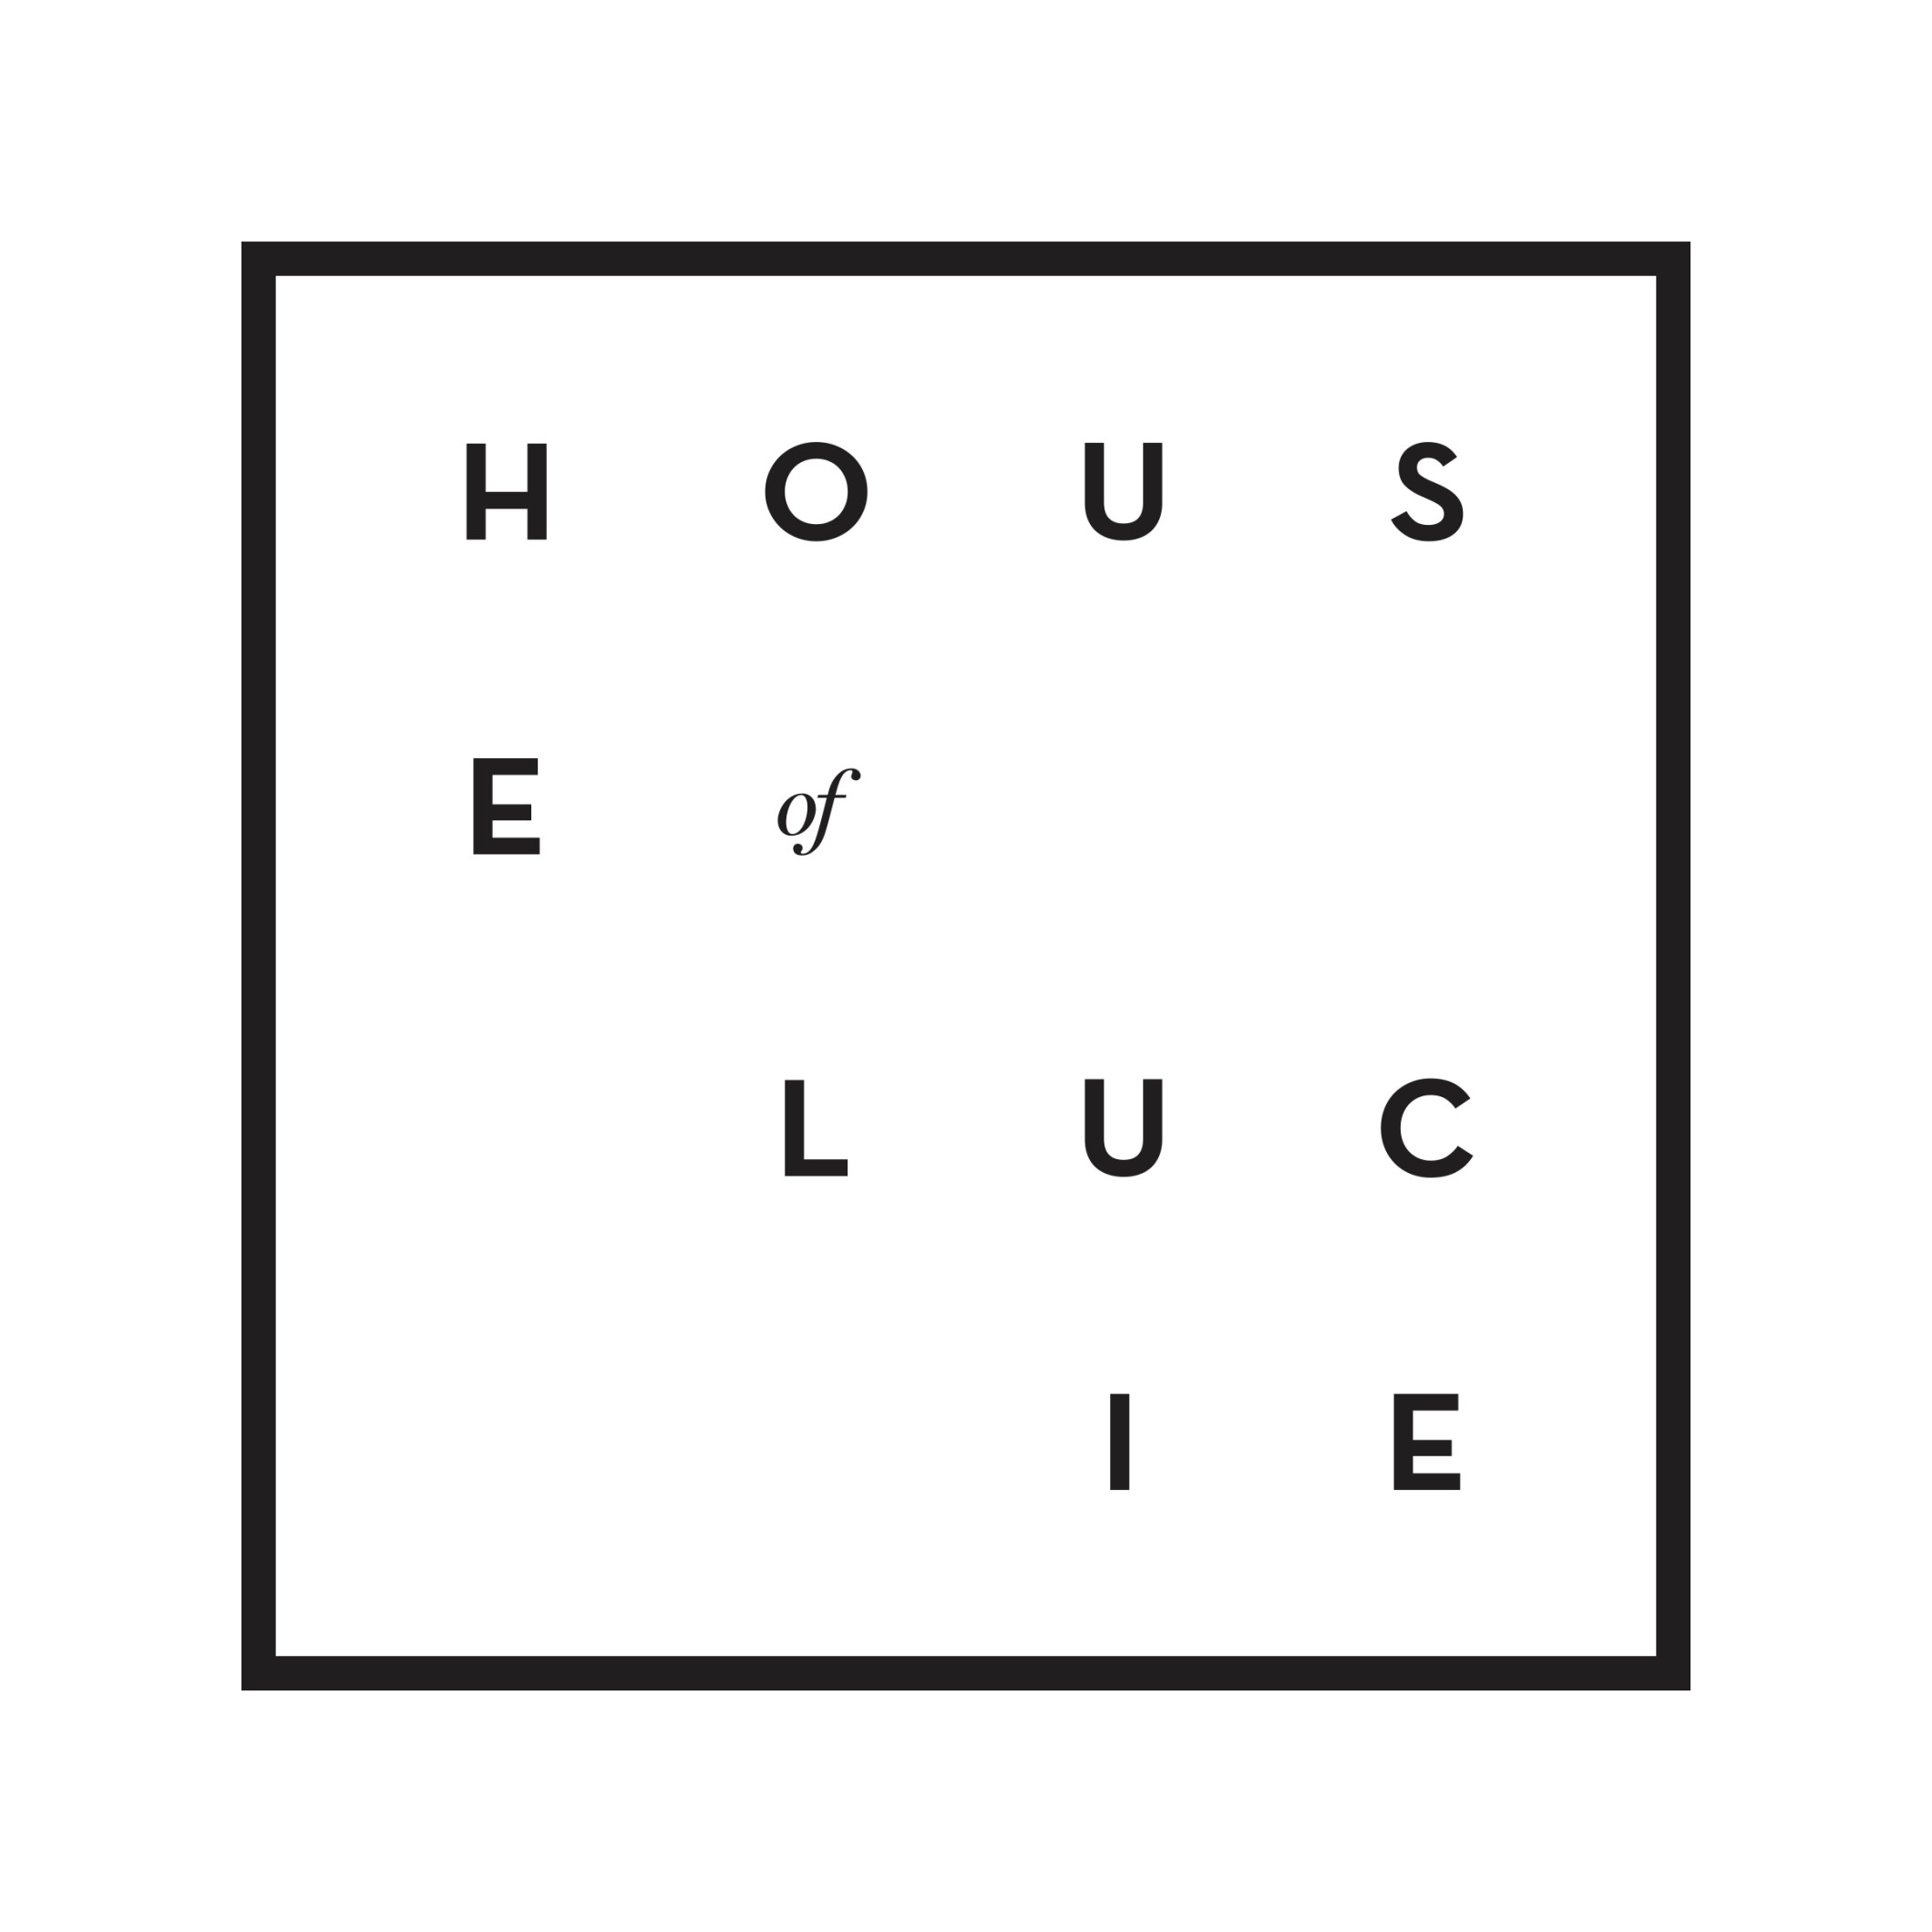 House-of-Lucie_square-Sign_12x12.jpg